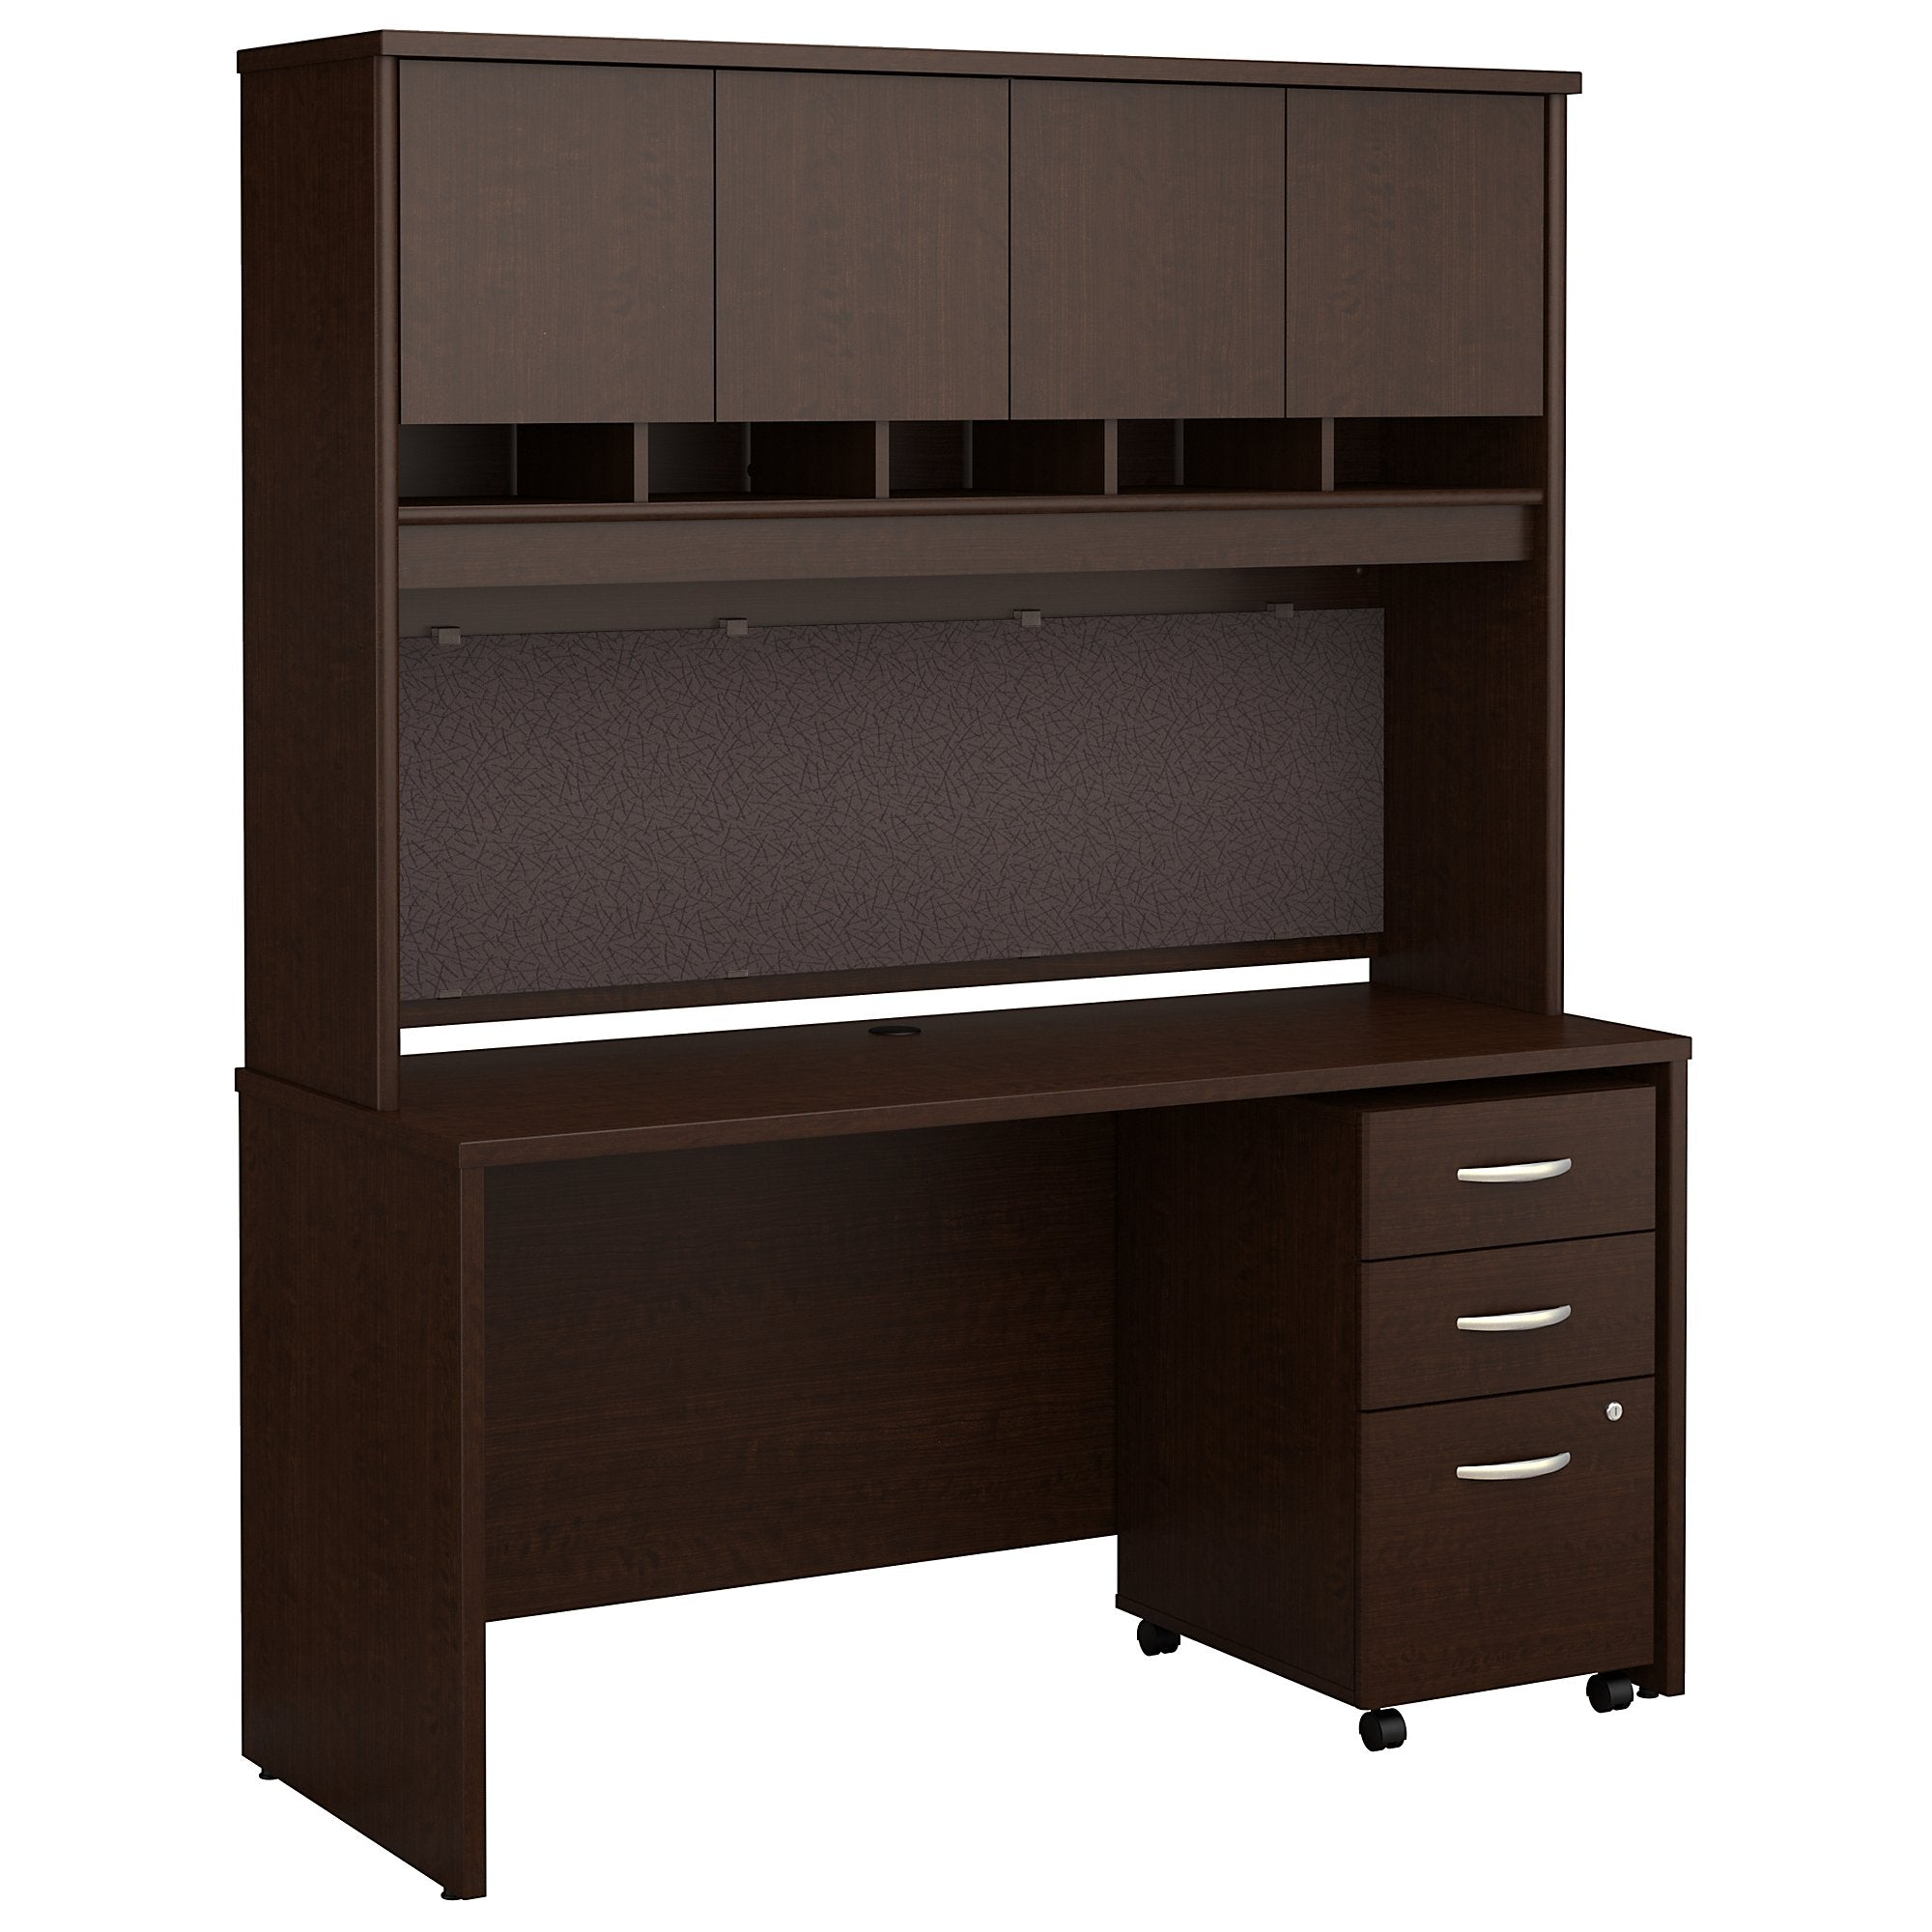 Bush Business Furniture Series C 60W x 24D Office Desk with Hutch and Mobile File Cabinet | Mocha Cherry